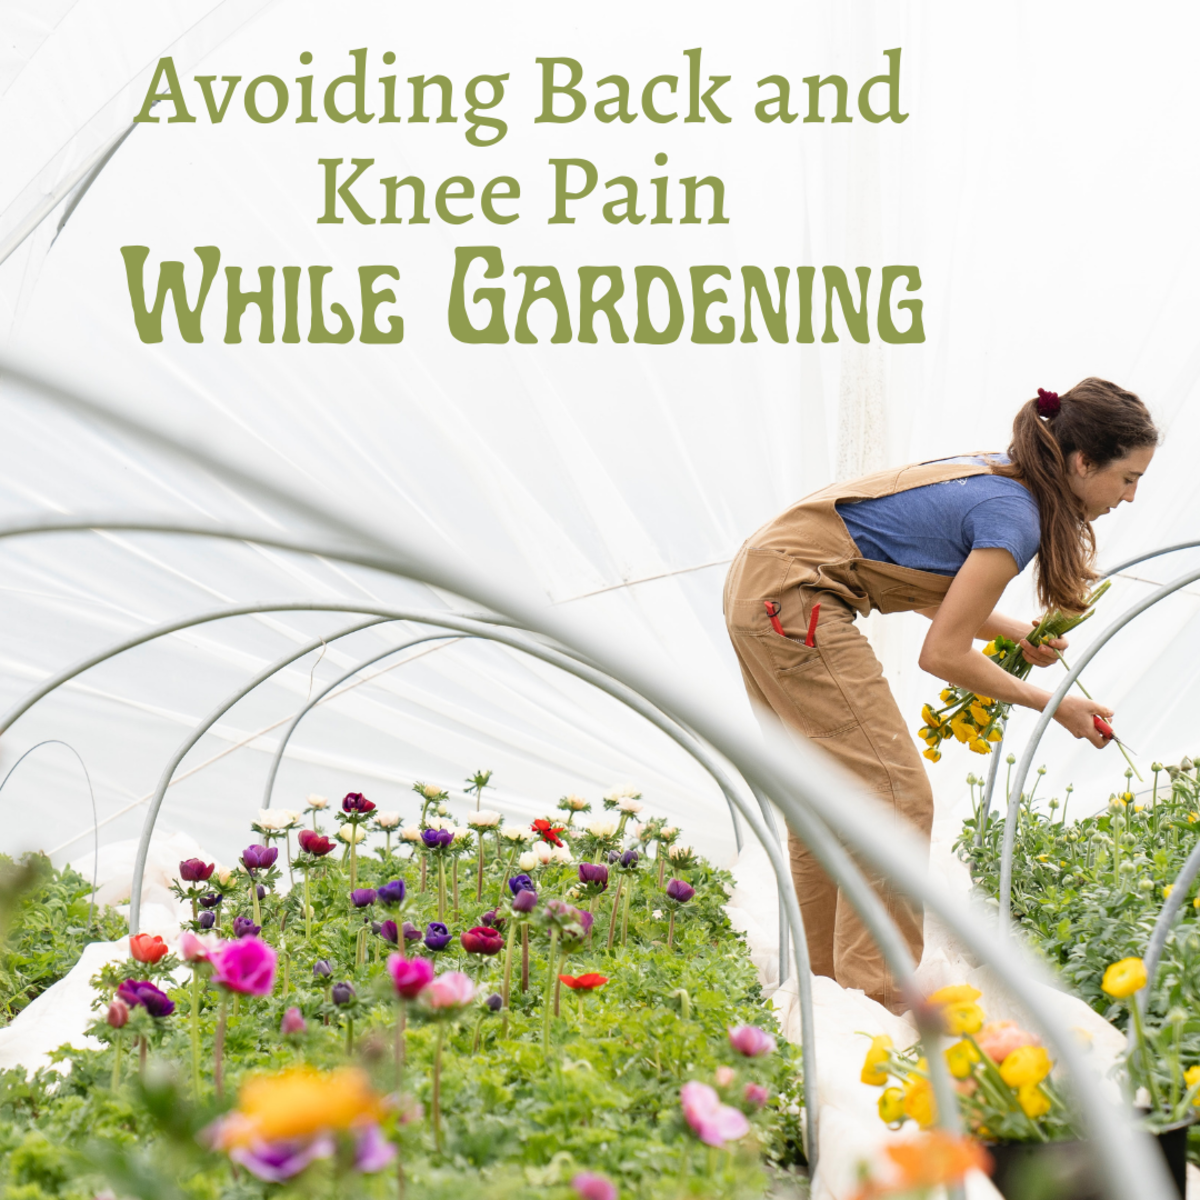 If you're not careful, you can end up with a sore back or knees after gardening or doing yardwork.